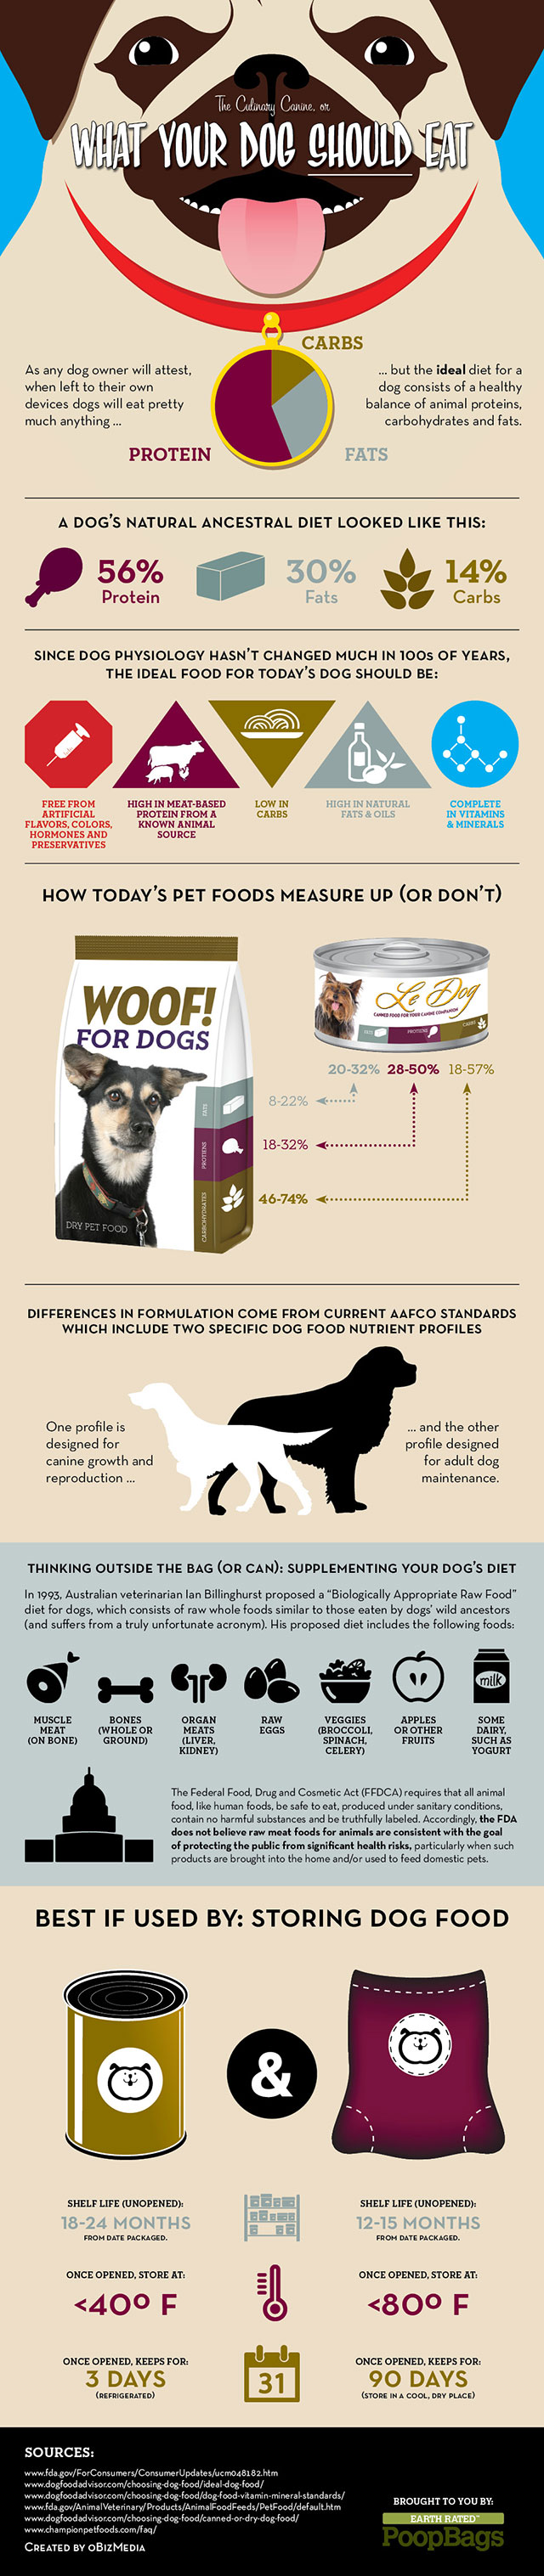 What Your Dog Should Eat by Earth Rated